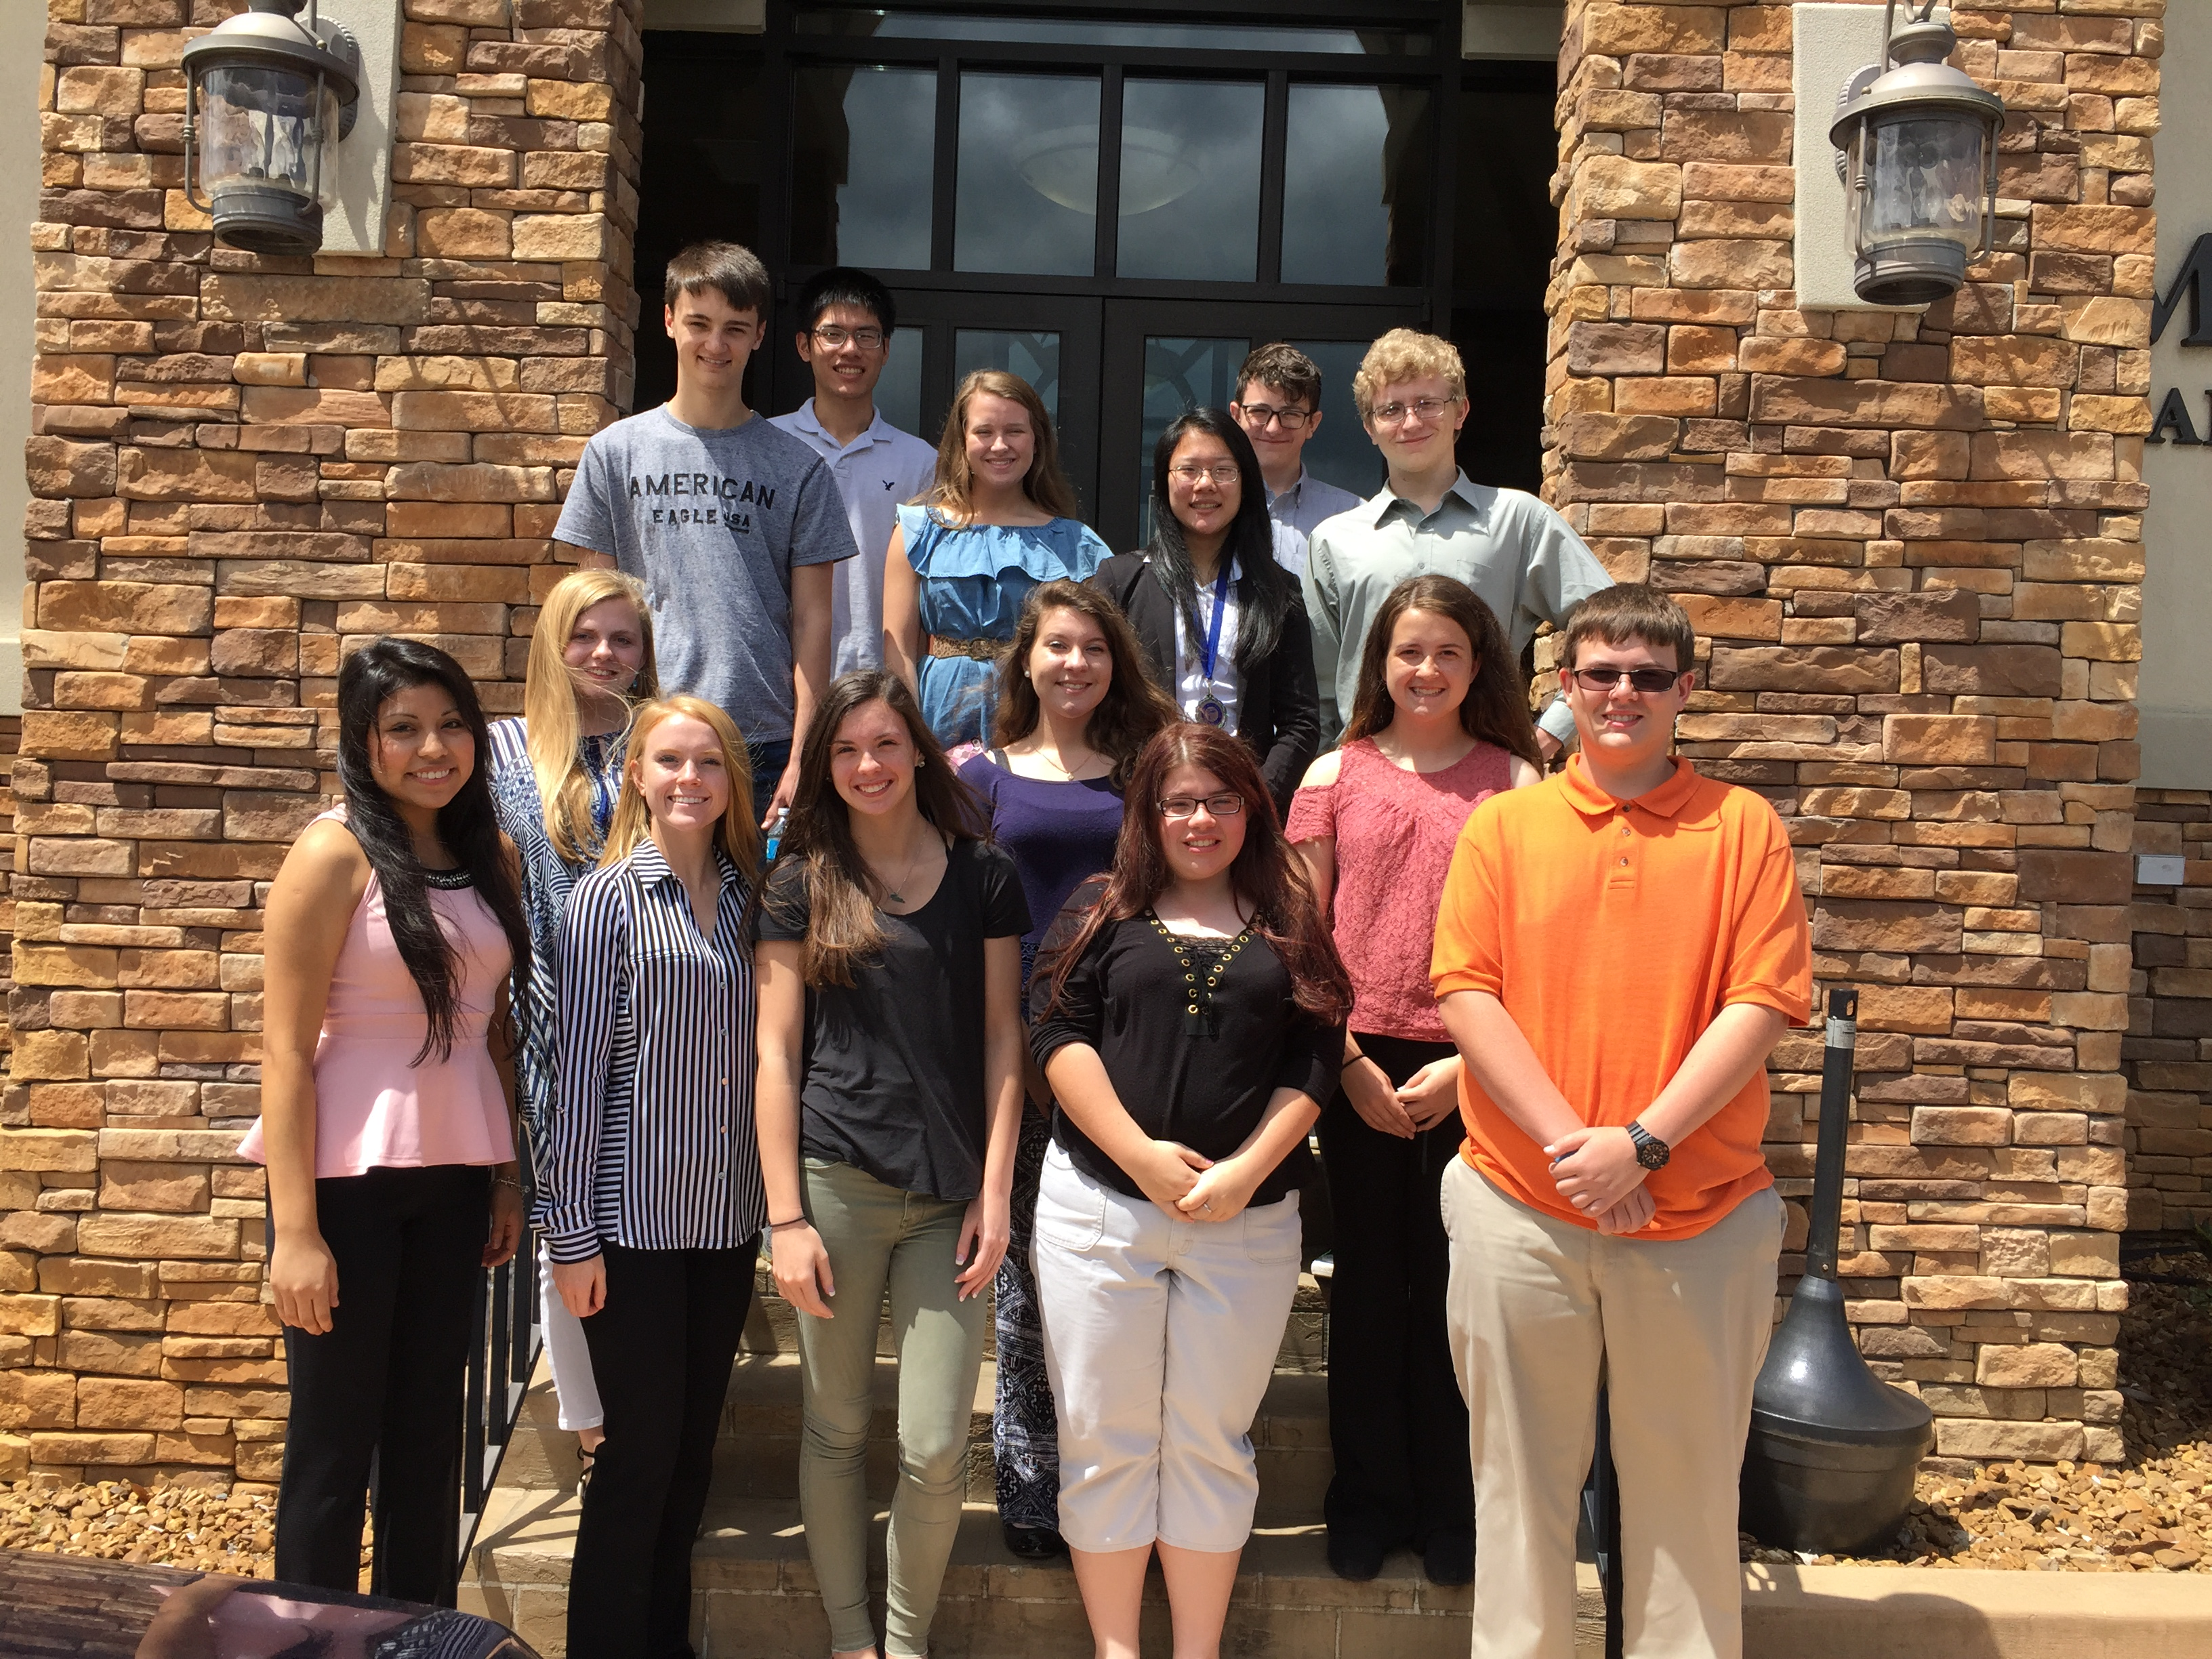 Student members of CCATC's FBLA chapter who competed at the State Leadership Conference were honored at the most recent Chamber of Commerce meeting.